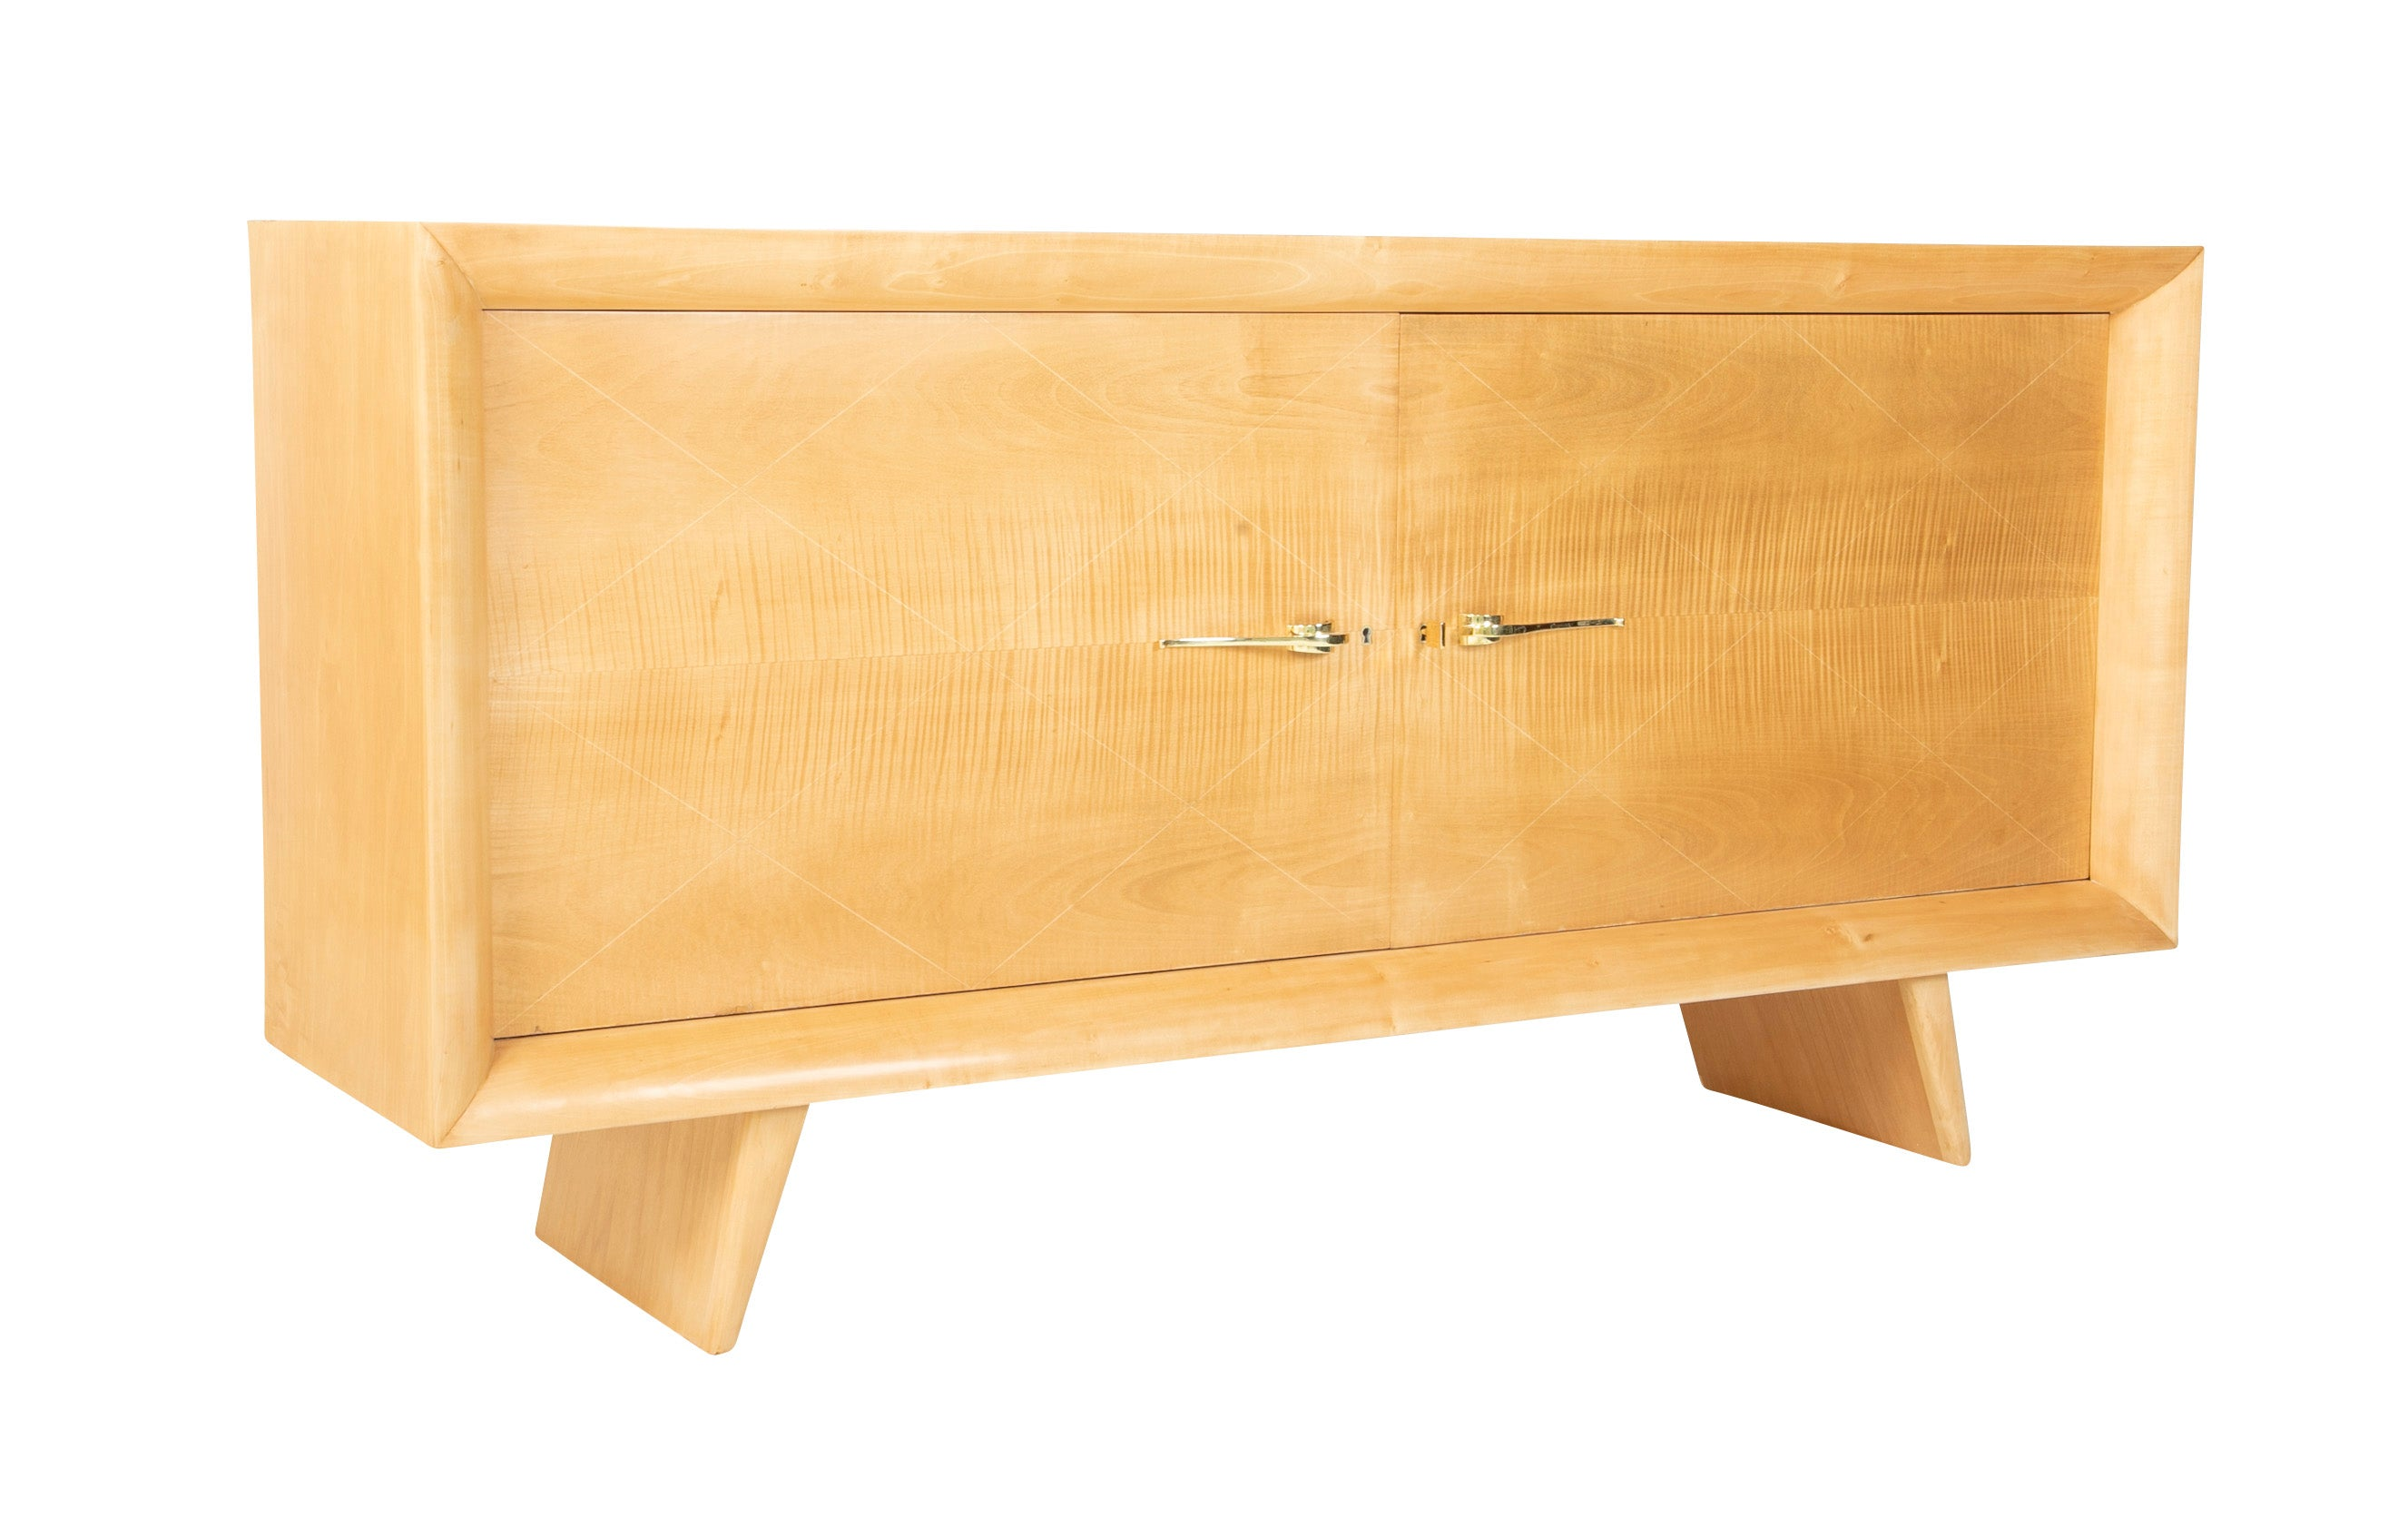 Sideboard Designed by Raymond Subes